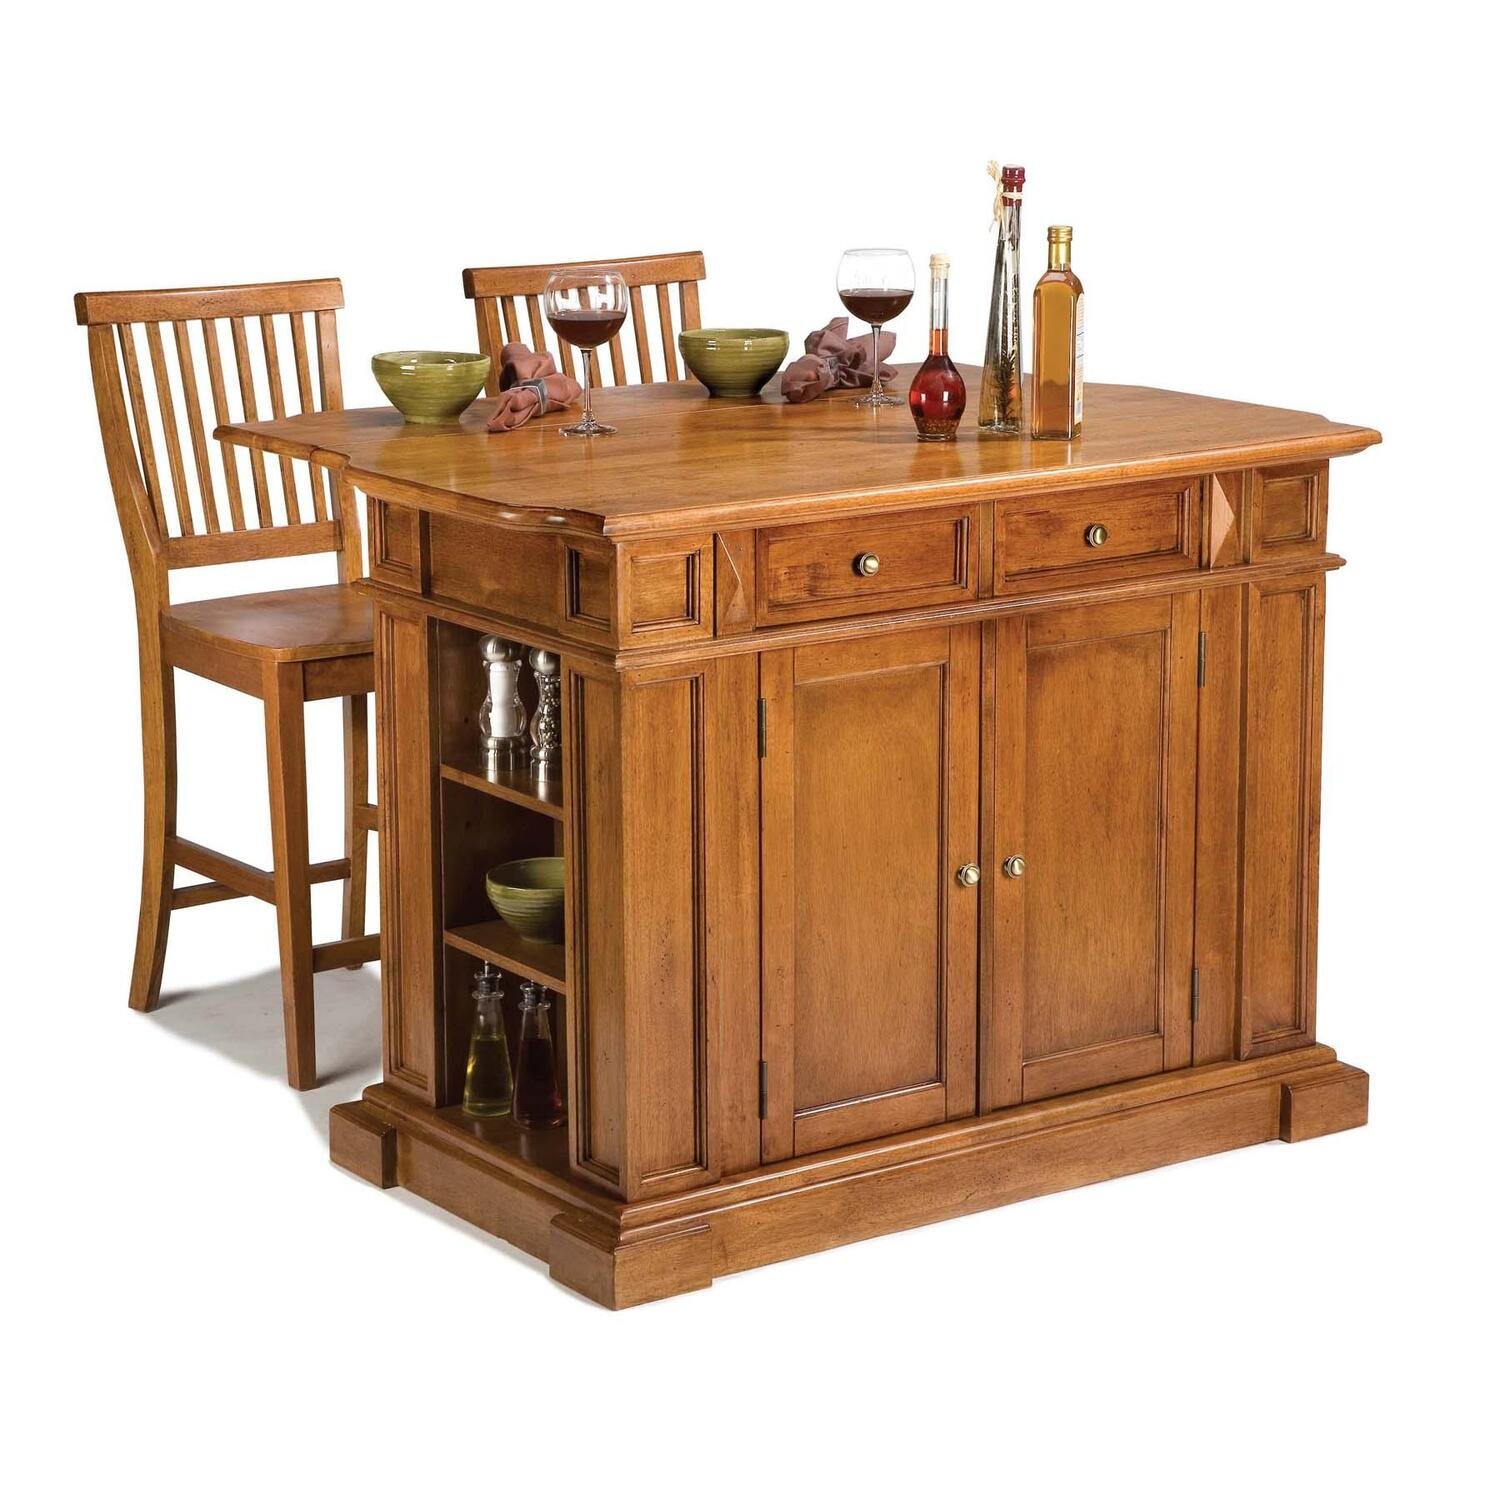 Home styles kitchen island and two stools by oj commerce - Kitchen island with stools ...